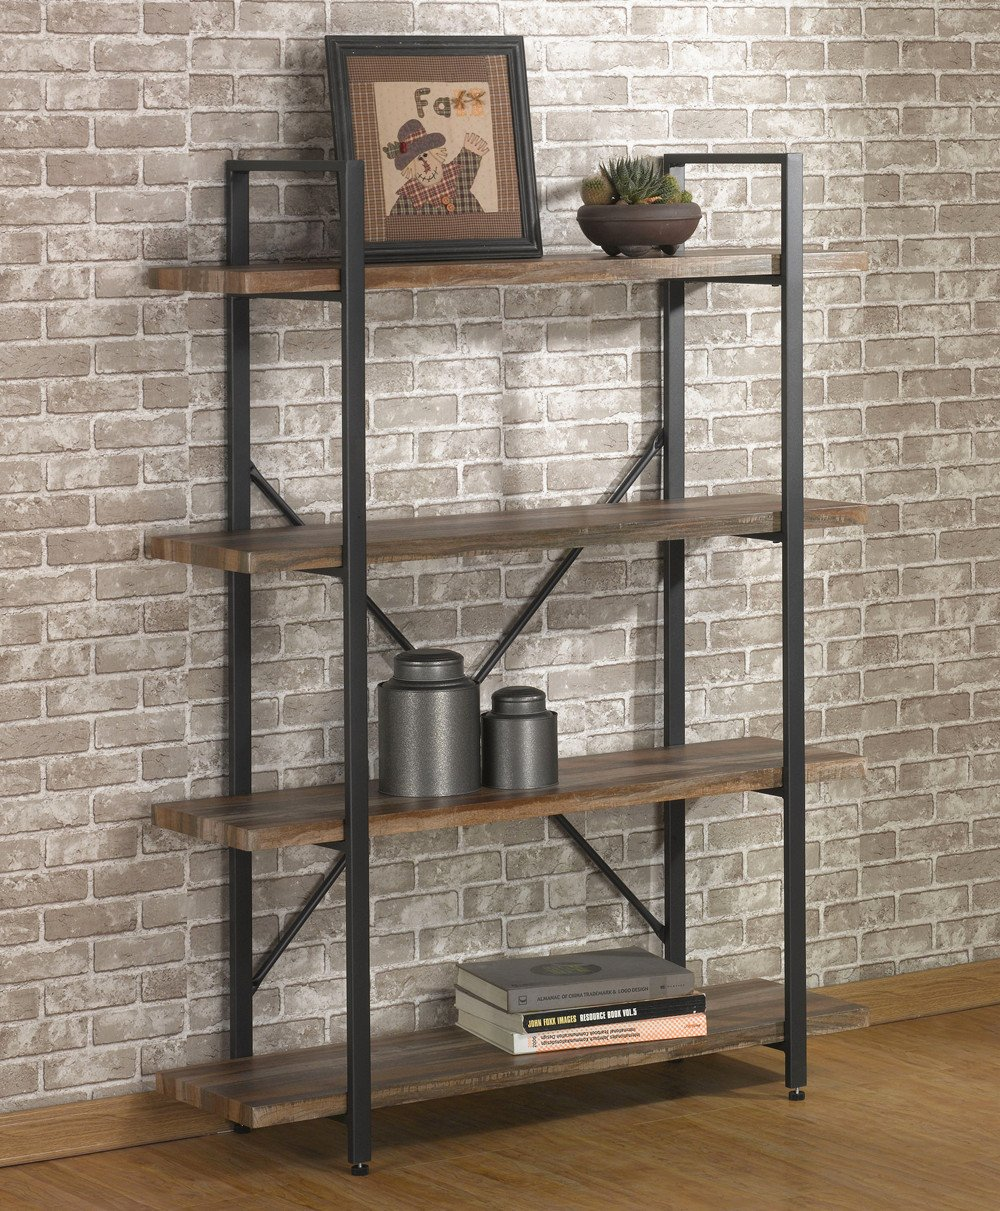 O&K Furniture 4 Tier Bookcases and Book Shelves, Industrial Vintage Metal and Wood Bookcases Furniture